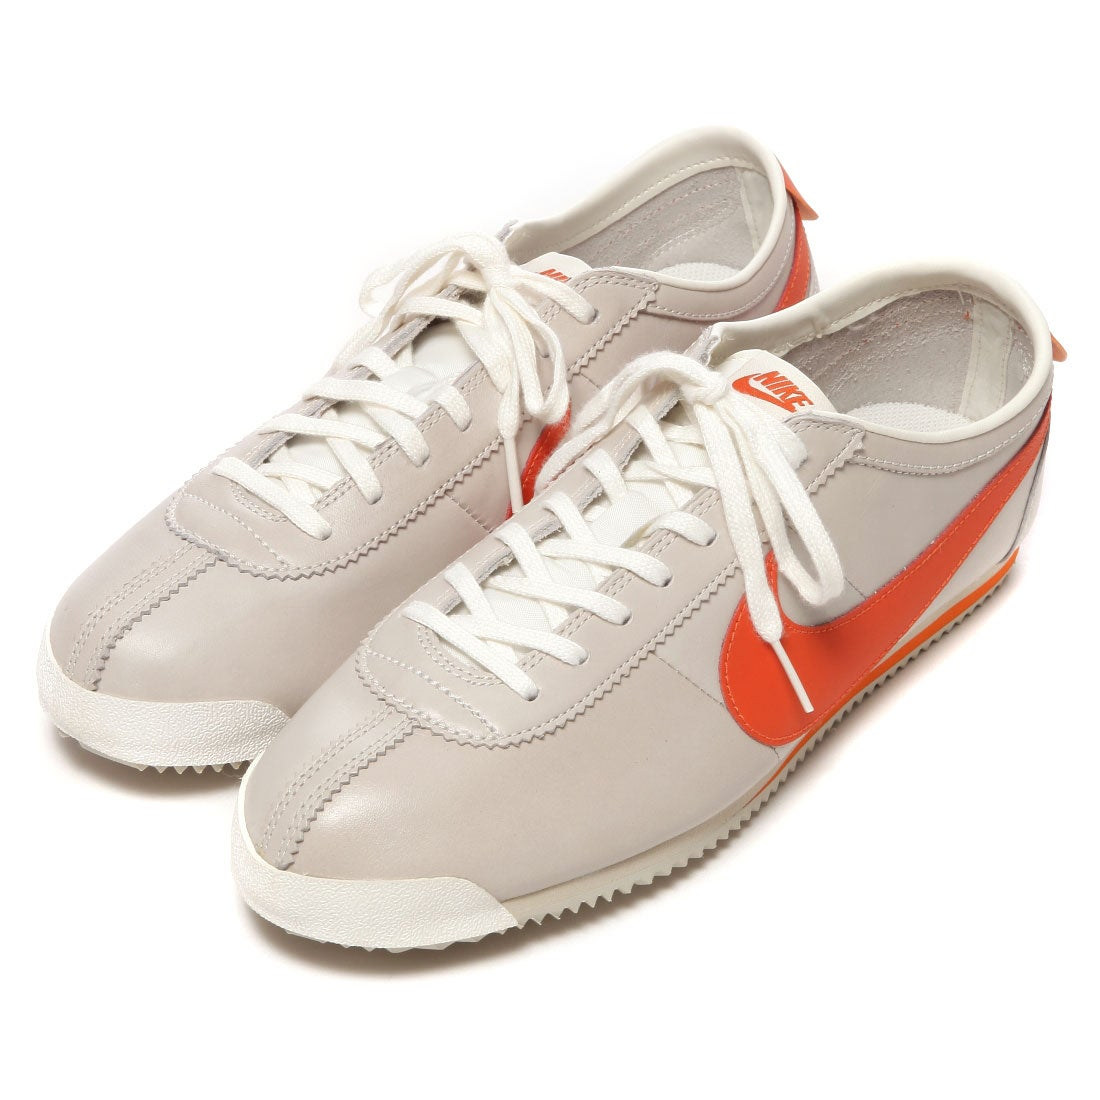 the best attitude 8363a 2ca97 ナイキ NIKE CHAPTER CORTEZ CLASSIC OG LEATHER(SAIL ORANGE) -アウトレット通販 ロコレット  (LOCOLET)